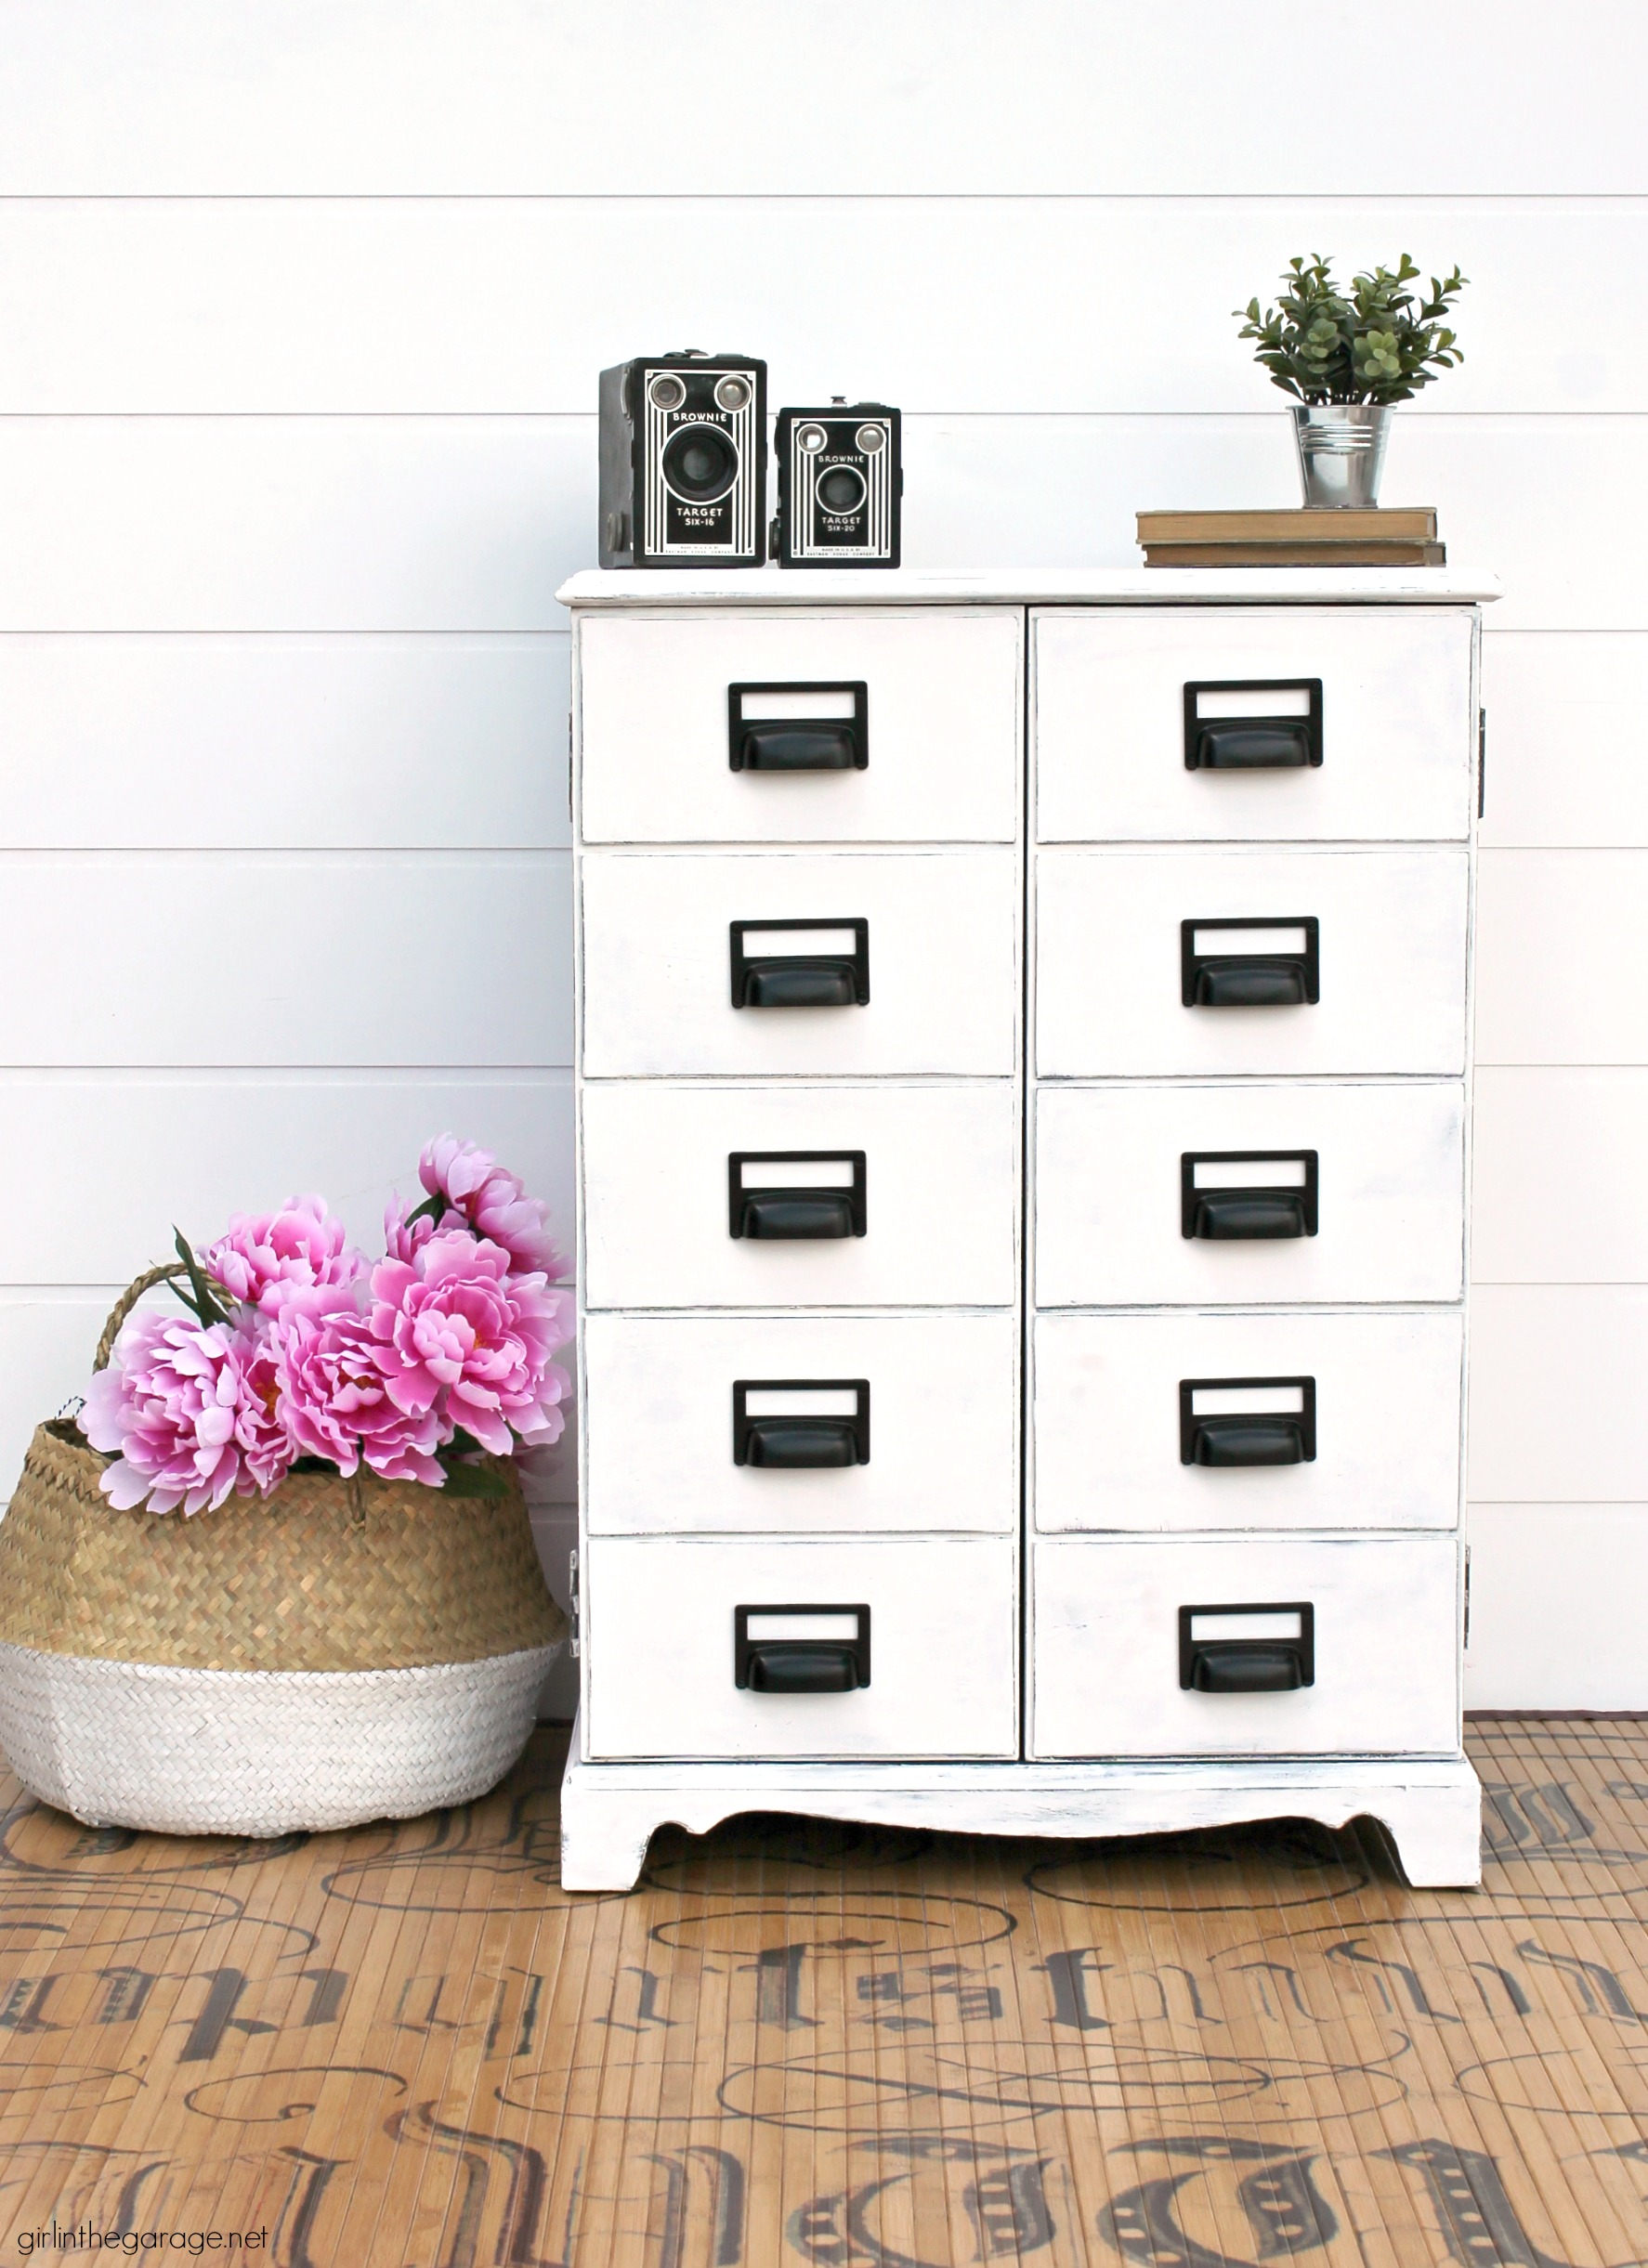 Curbside freebie to DIY Apothecary Cabinet - Painted furniture ideas by Girl in the Garage